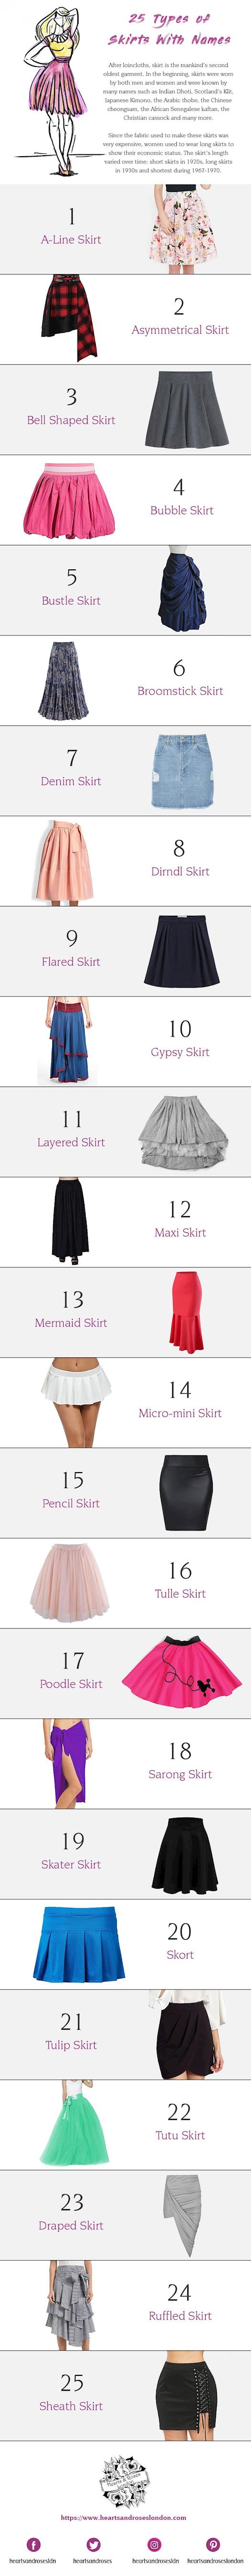 25 Types of Skirts with Names